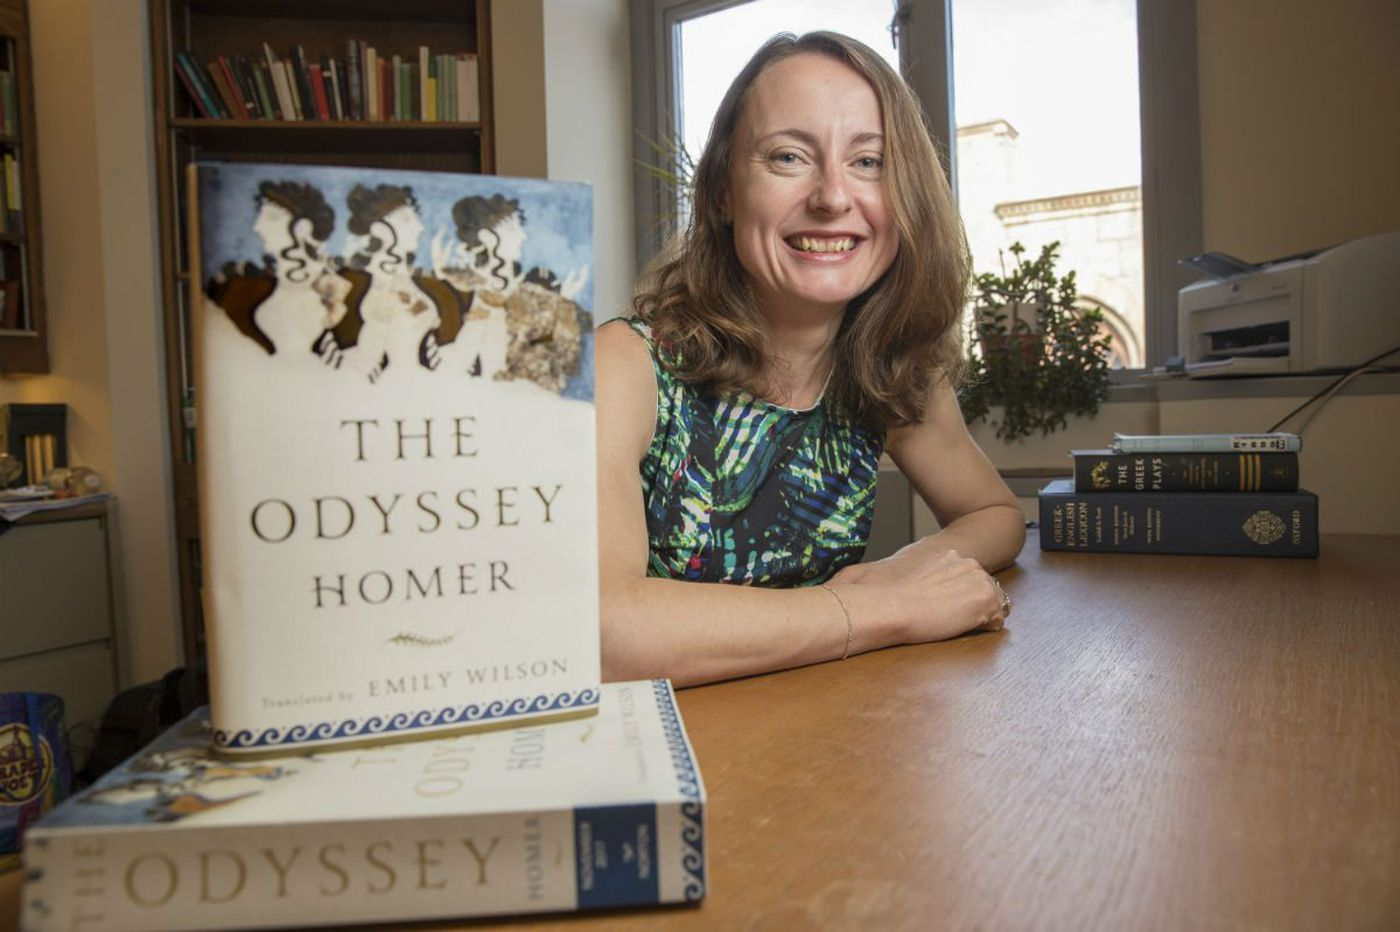 A middle-aged smiling white woman with shoulder-length auburn hair, wearing a colorful sleeveless shirt. In the foreground, her translation of the book The Odyssey by Homer is displayed.